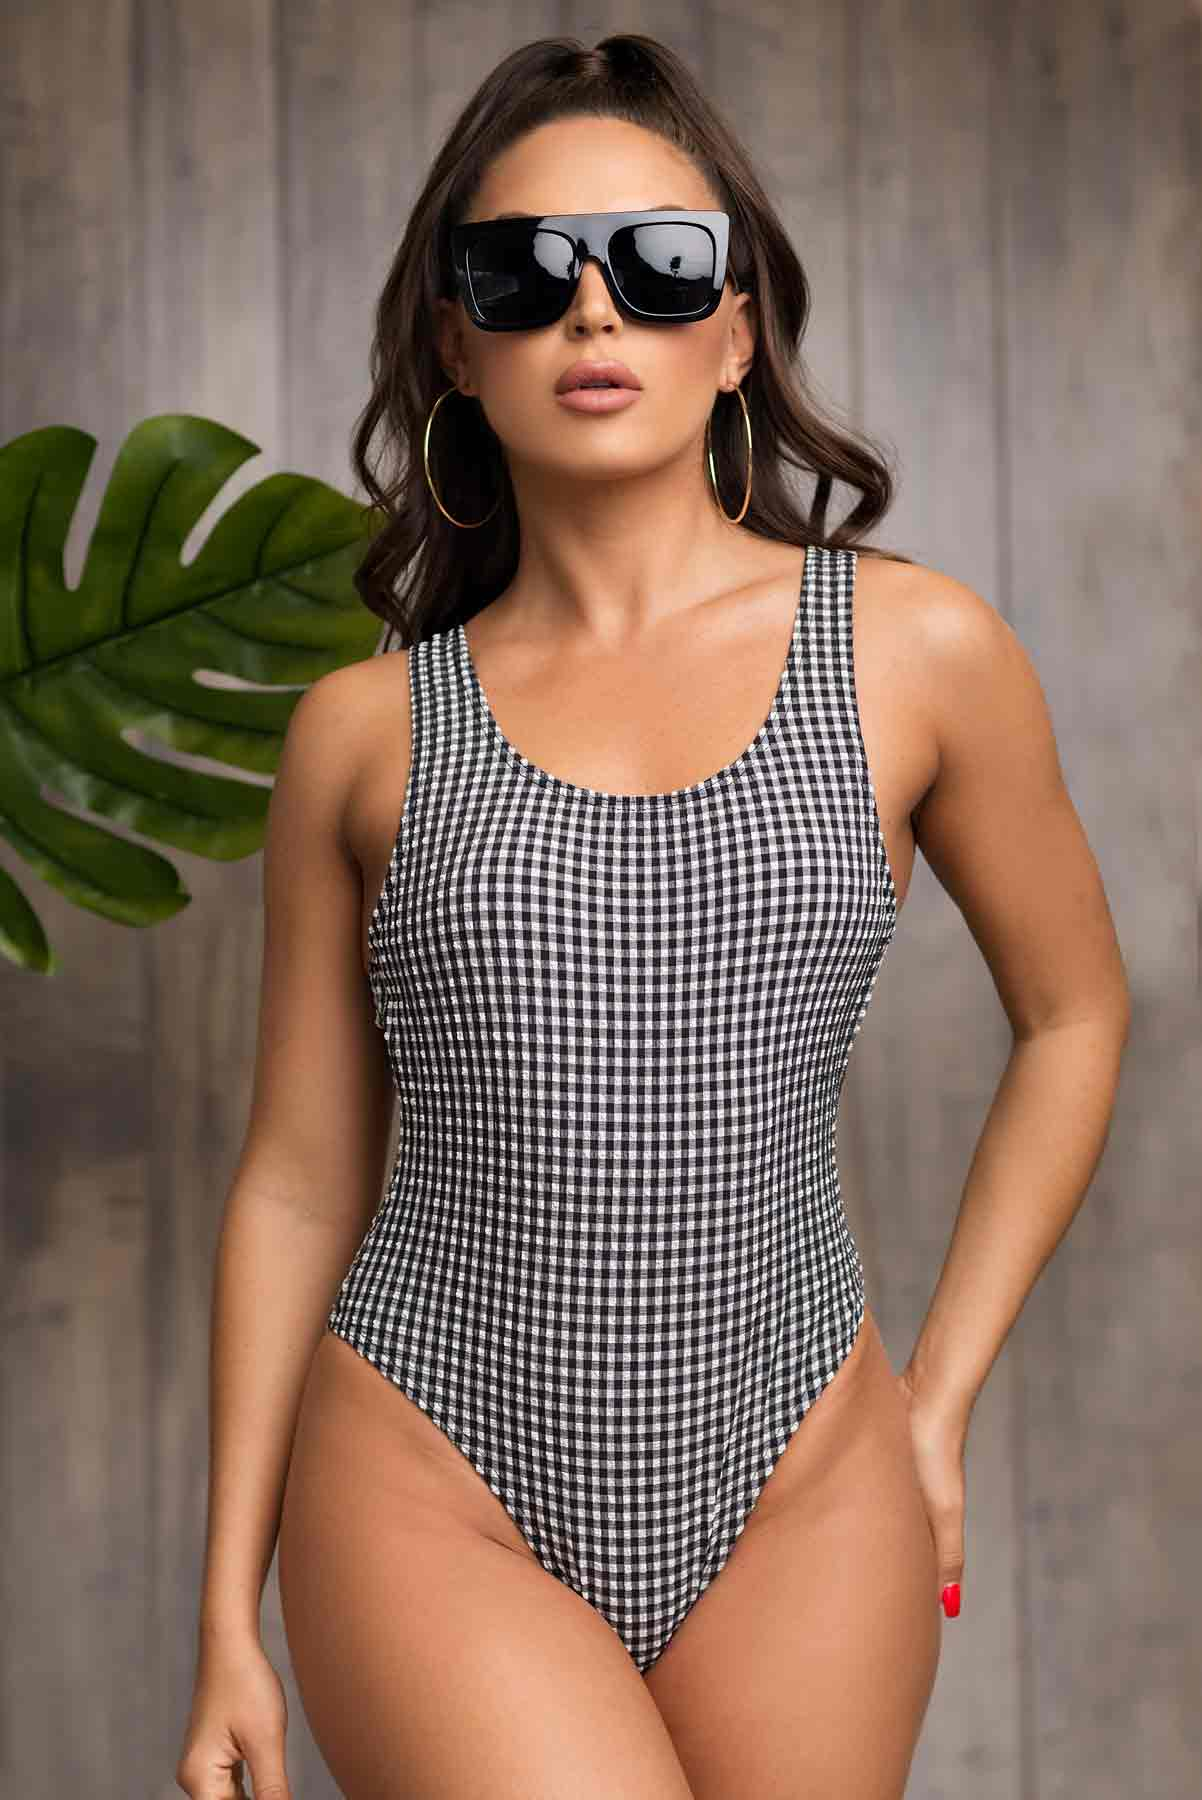 Half Moon Bay One Piece Swimsuit